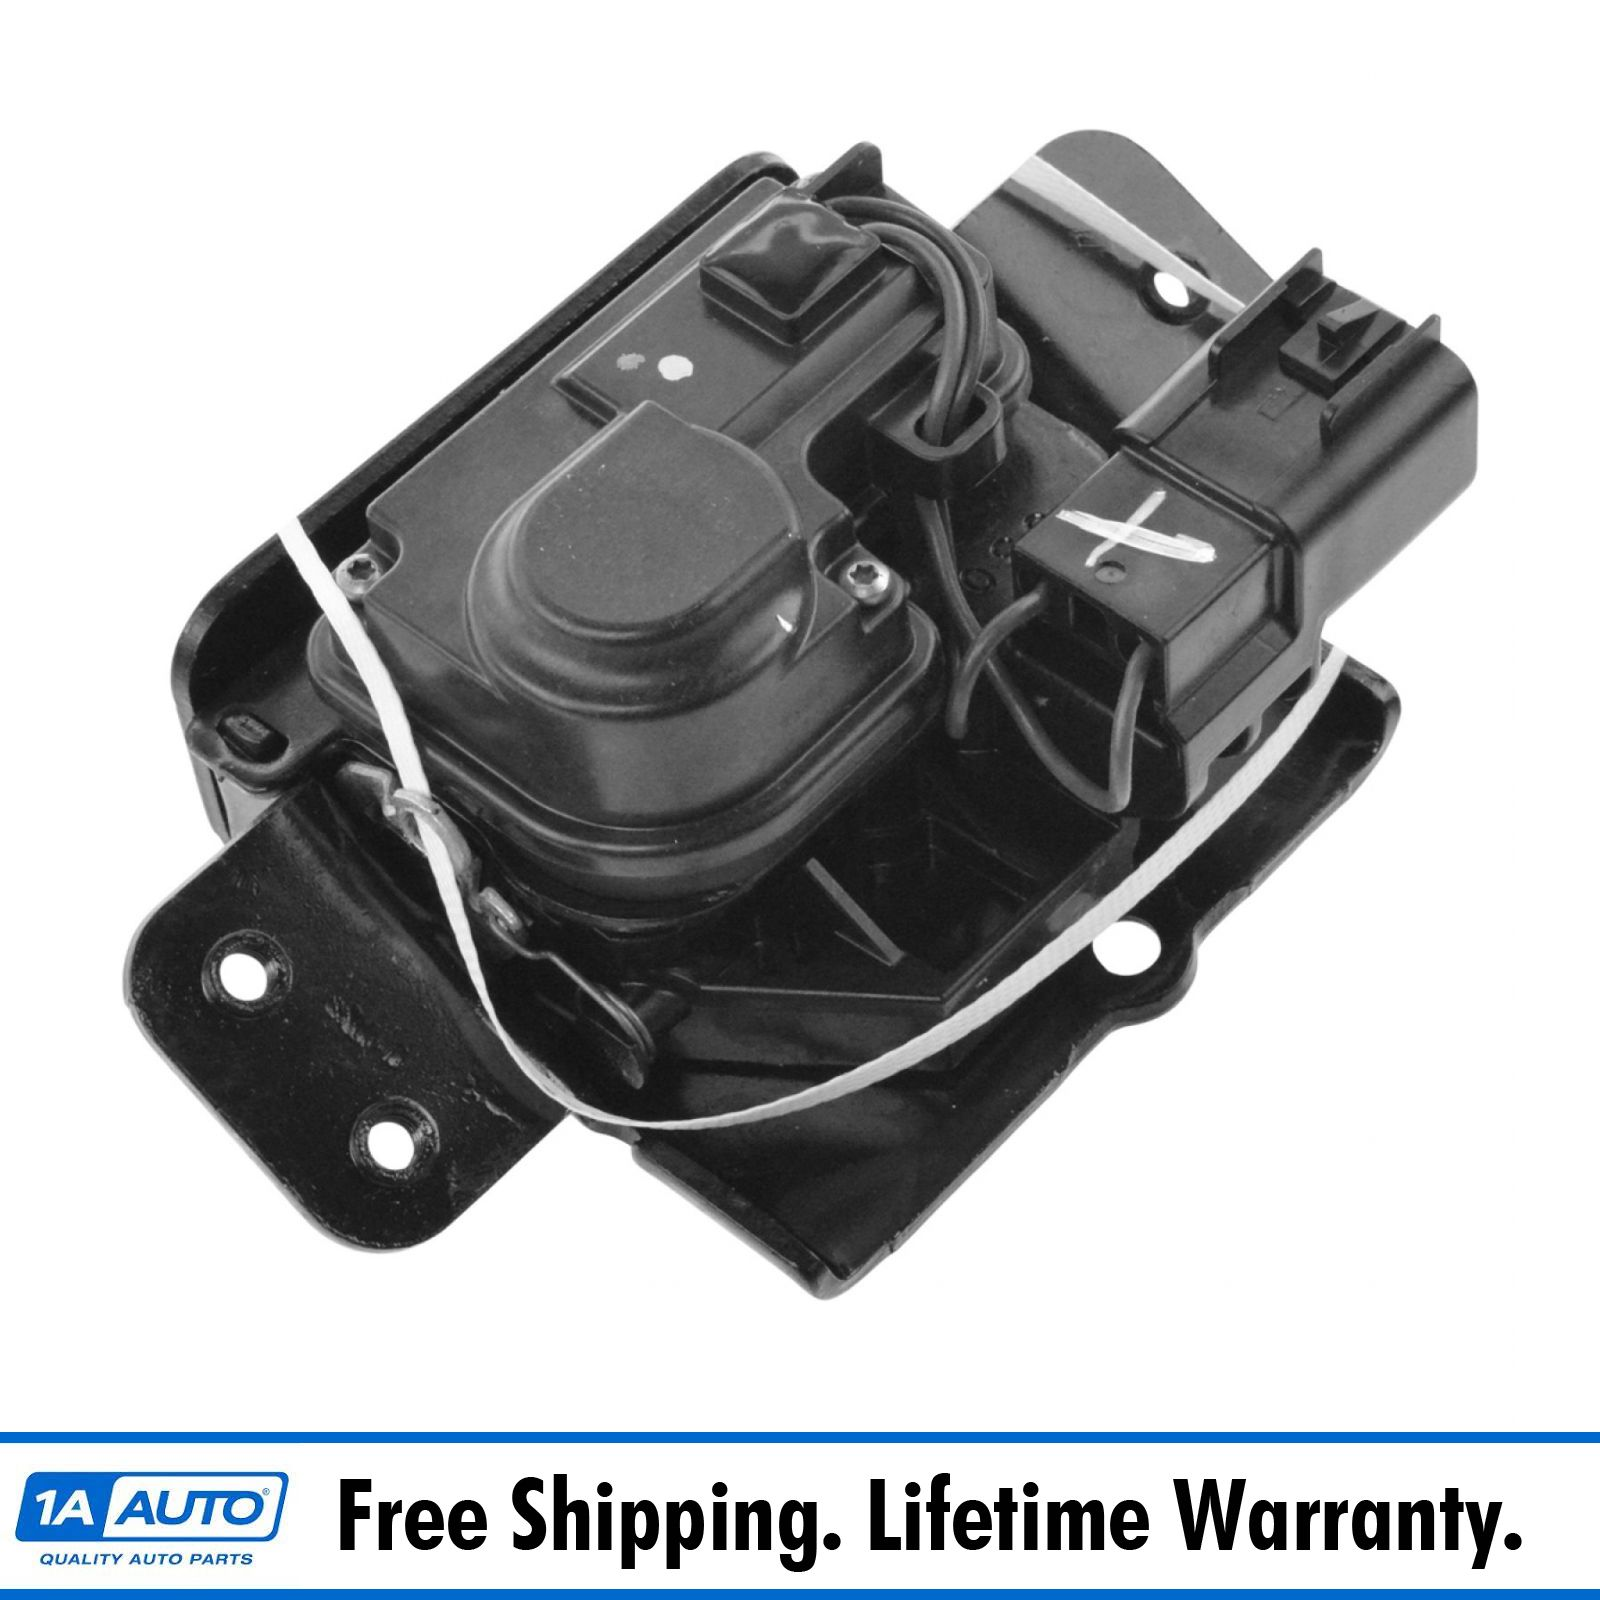 Oem Liftgate Power Lock Actuator W Integrated Latch For Chevy Gmc Equinox Door Wiring Suv New